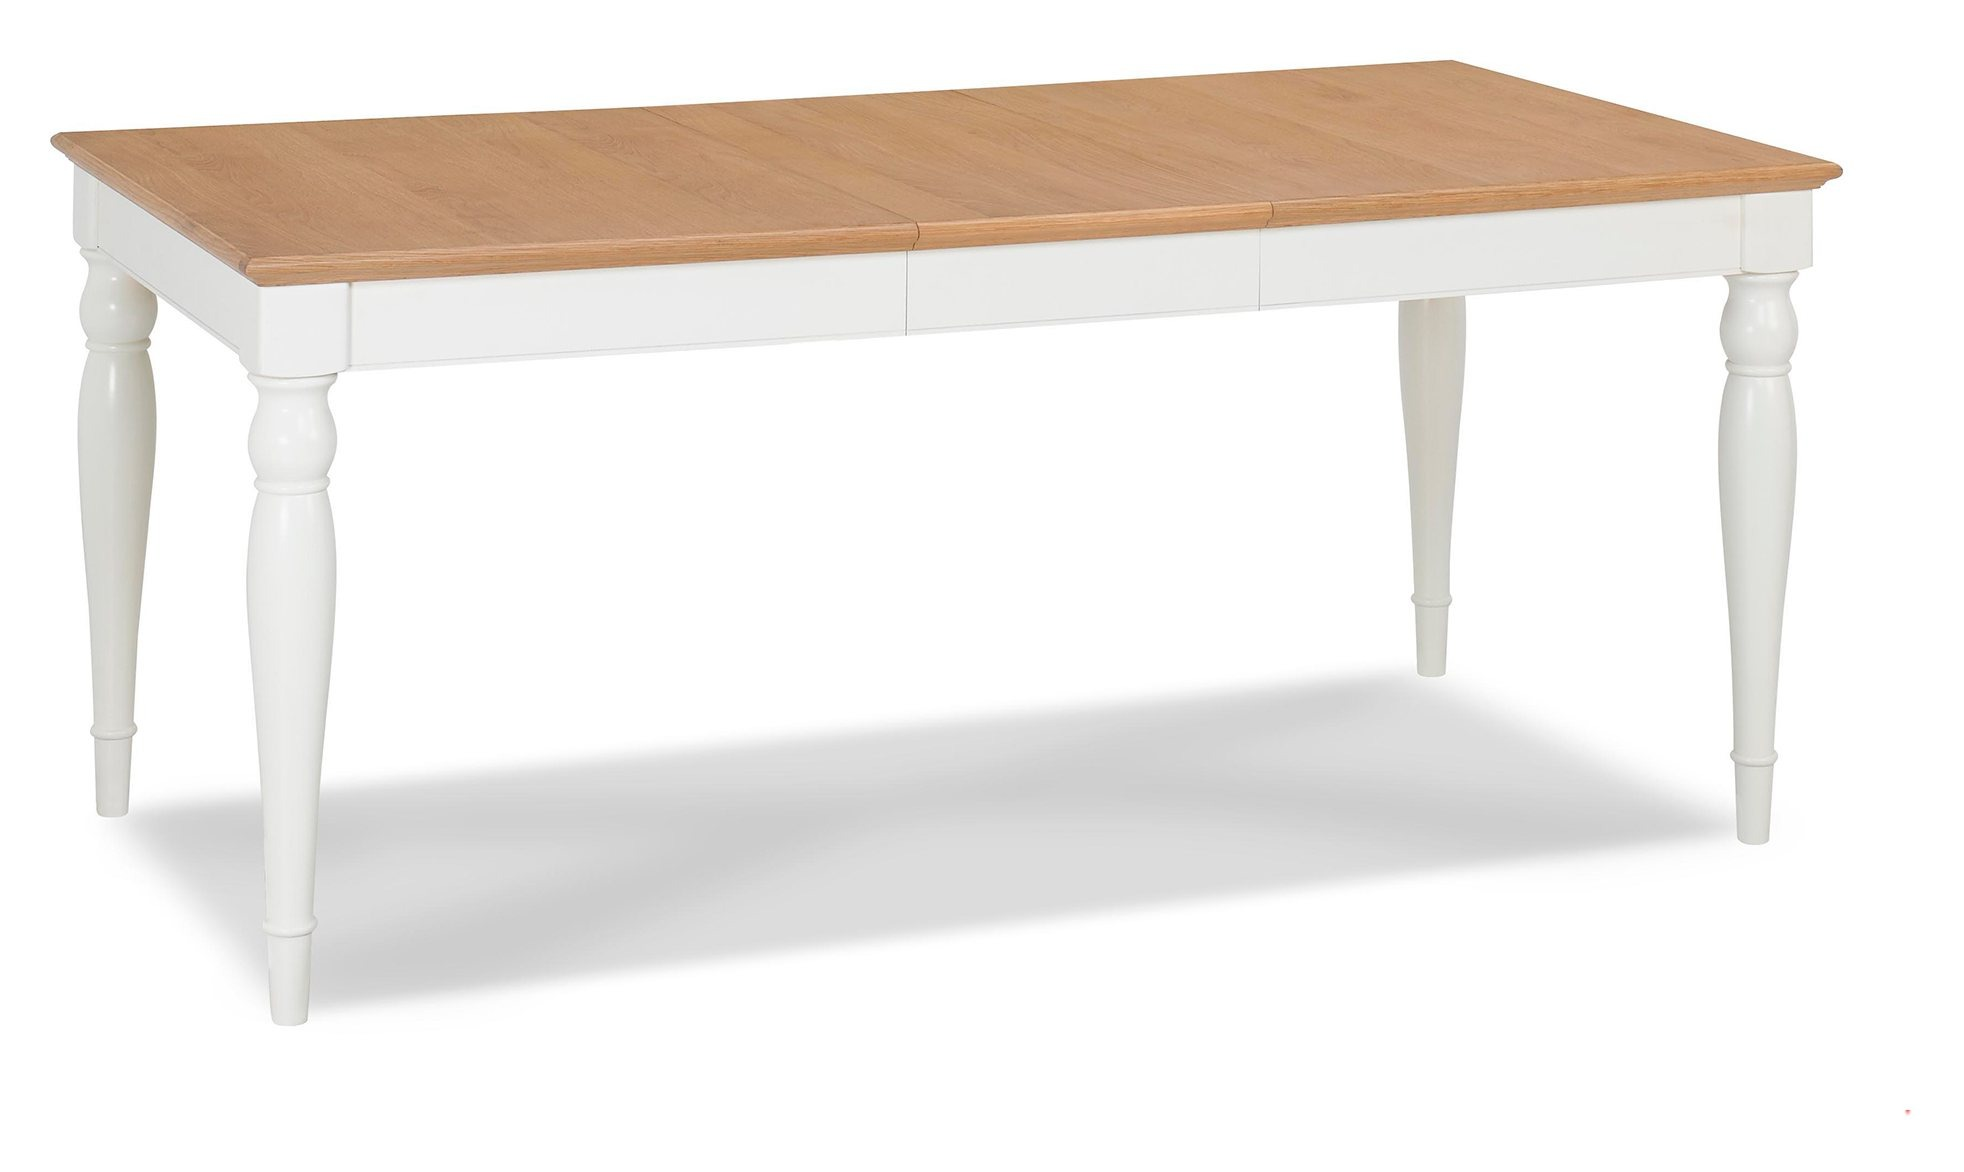 KYRA TWOTONE 6-8 DINING TABLE